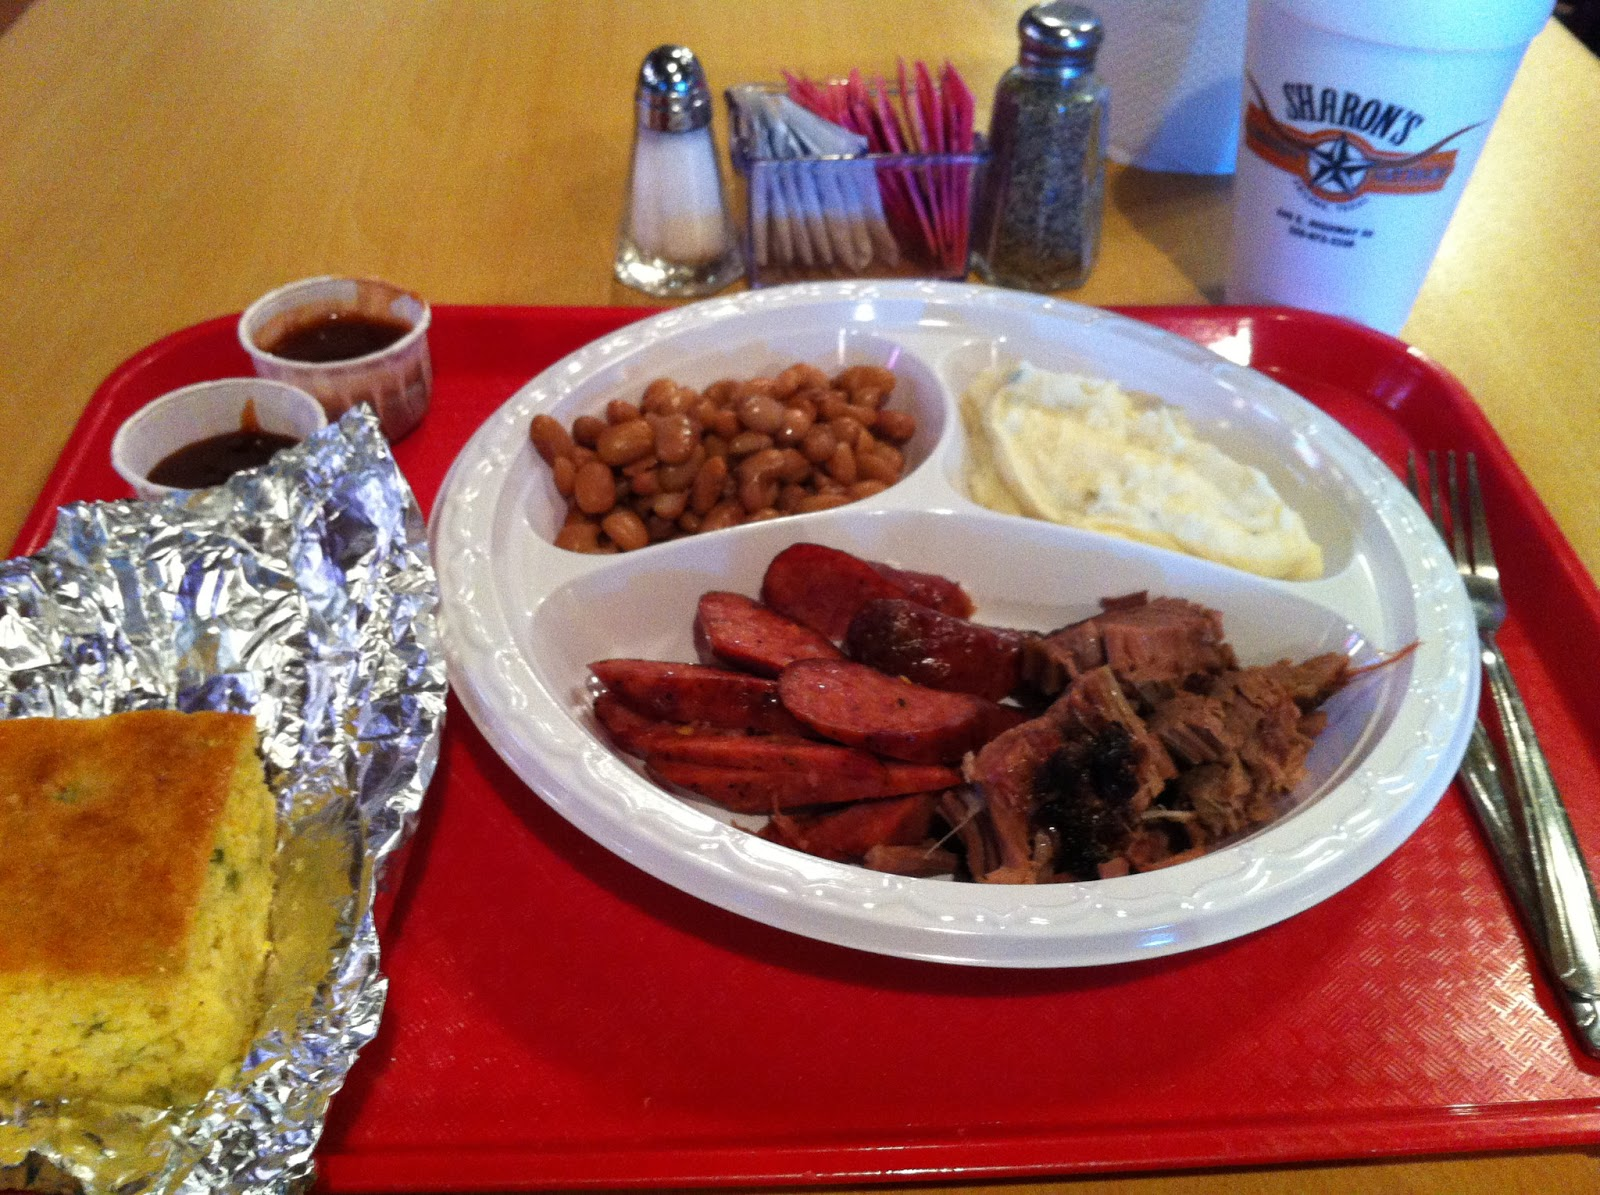 Sharon Barbeque Abilene BBQ Barbecue Bar-B-Que Sausage Brisket